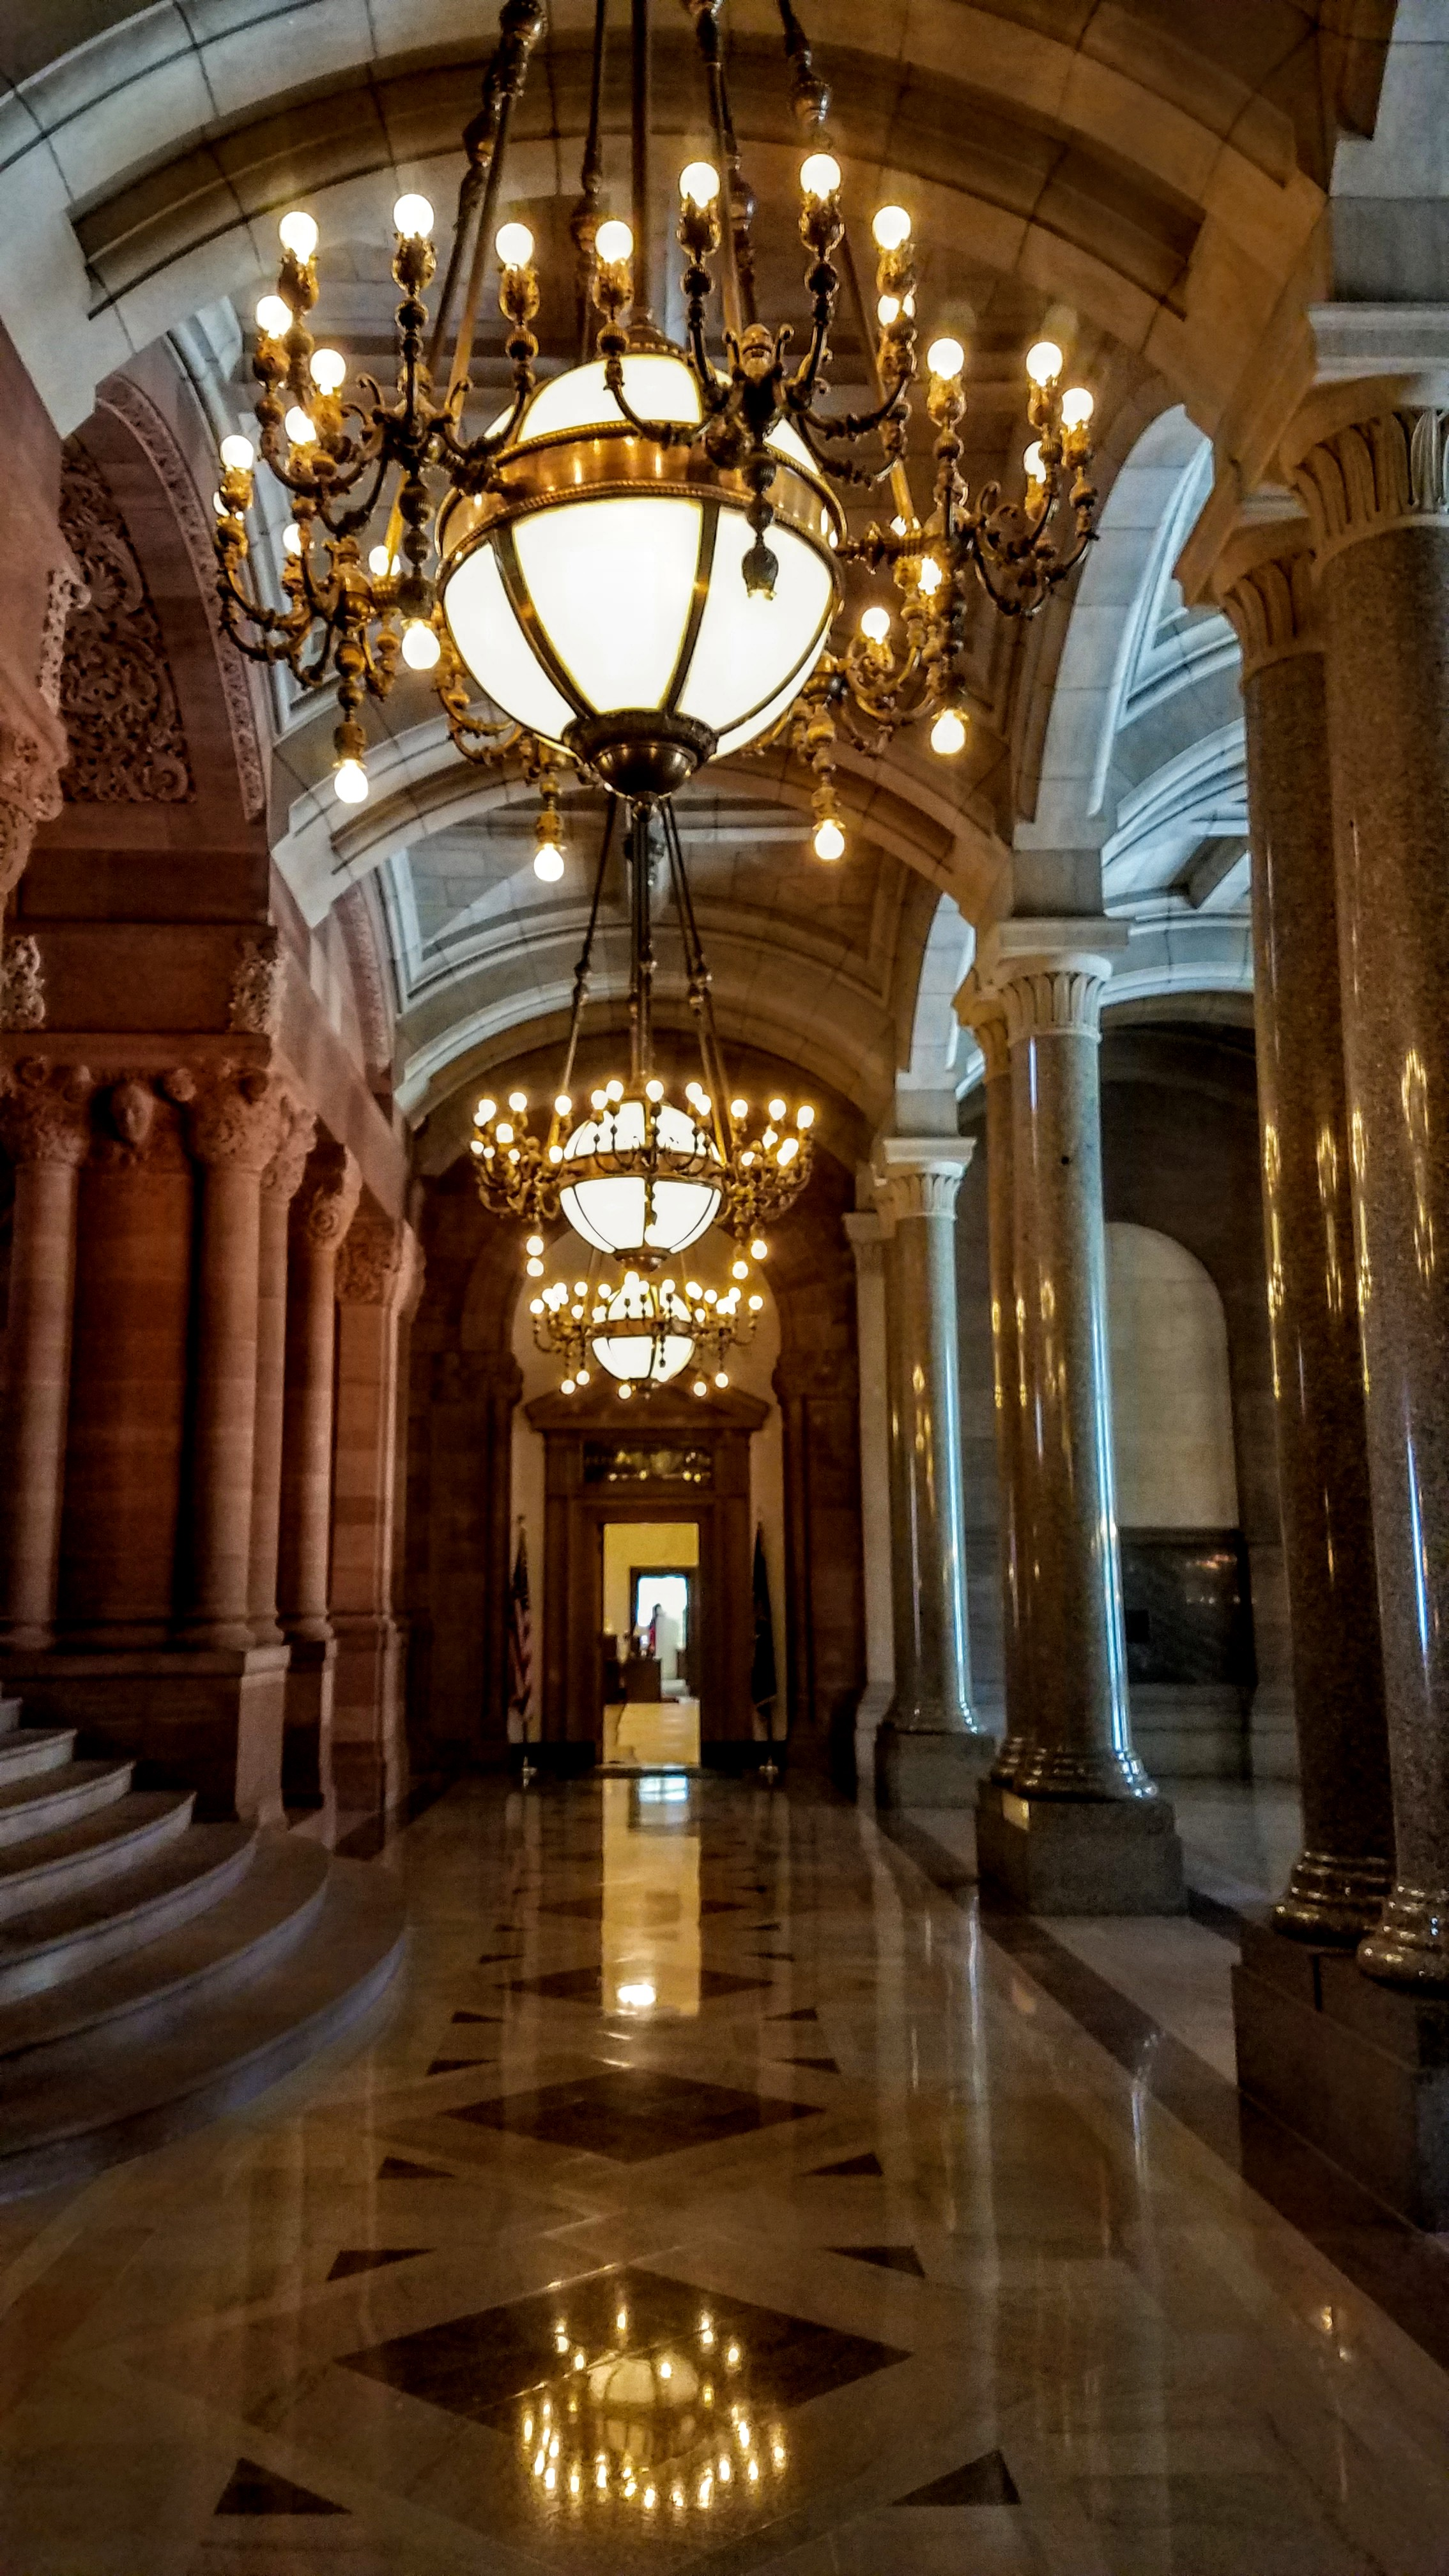 Inside the State Capitol